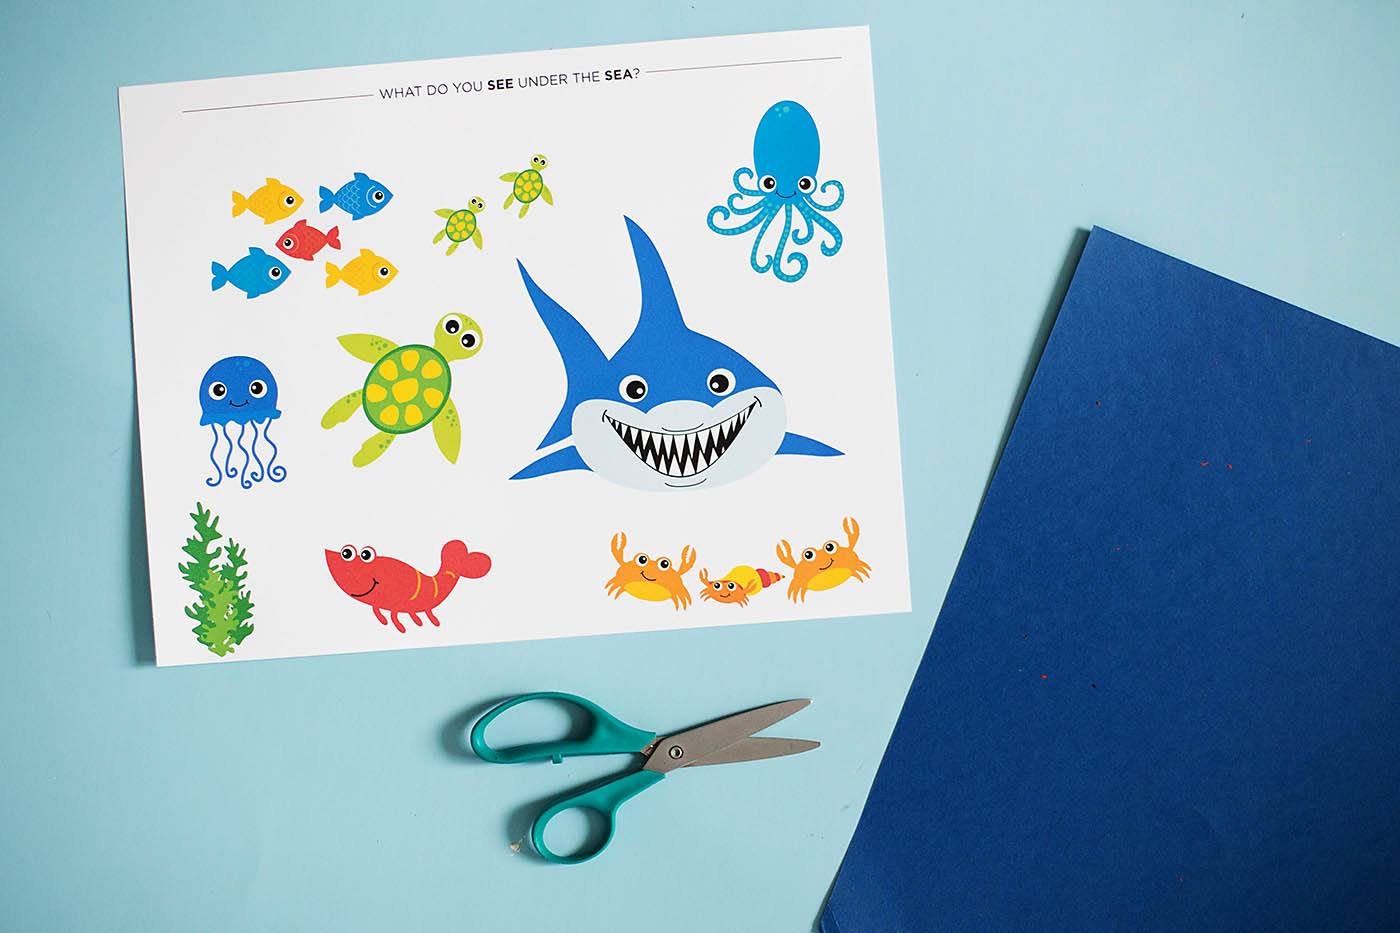 An ocean themed cutting craft perfect for kids learning to use scissors a 4 year-old milestone!